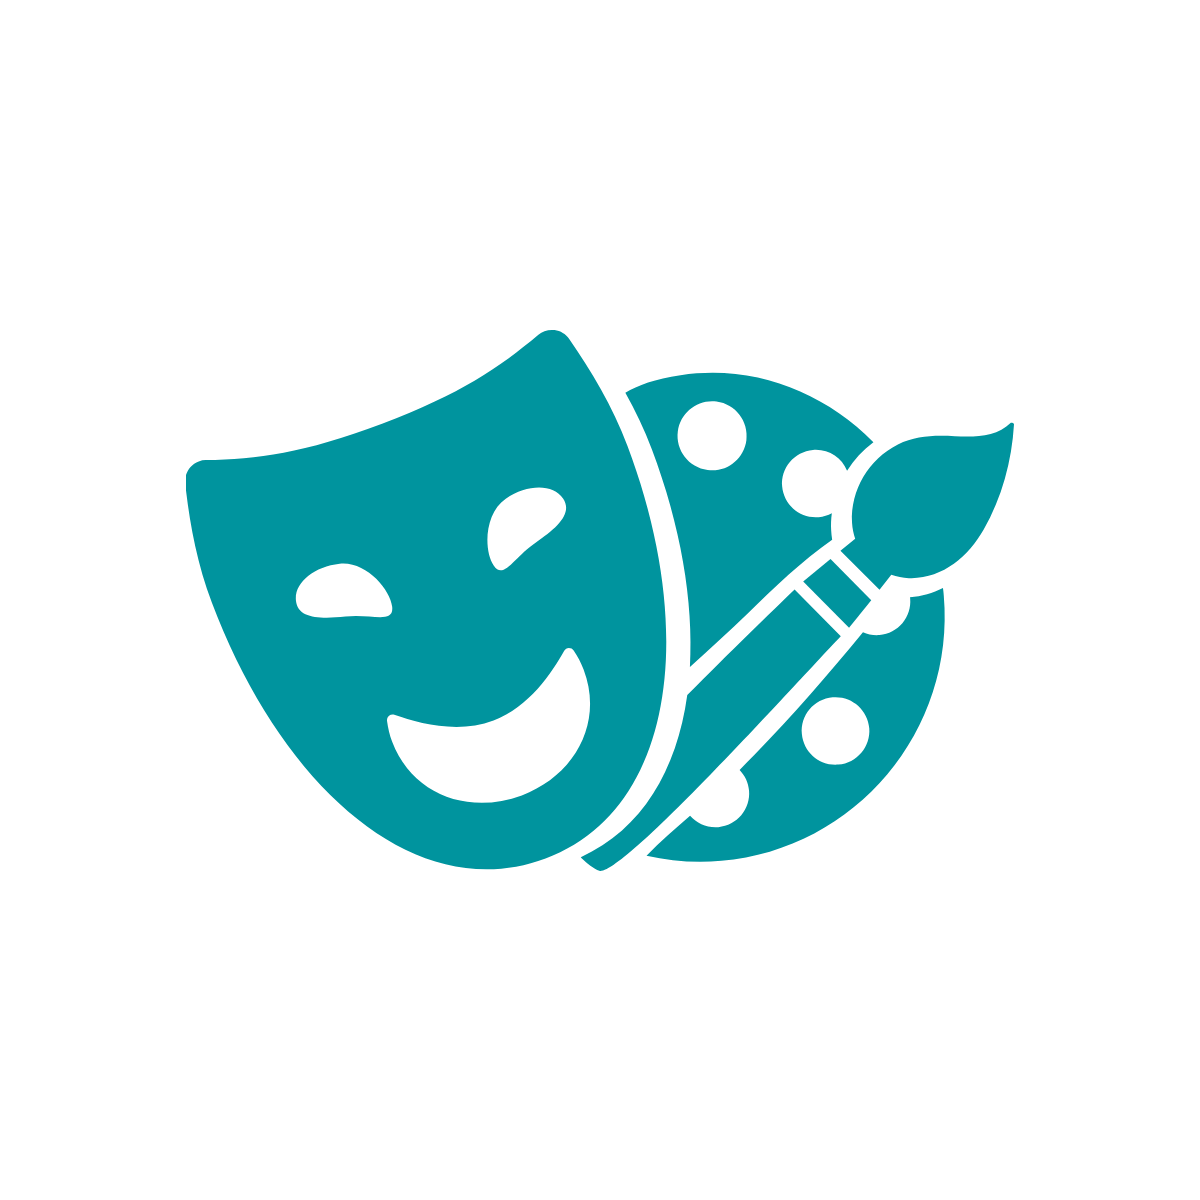 Theatre mask and paint palette icon